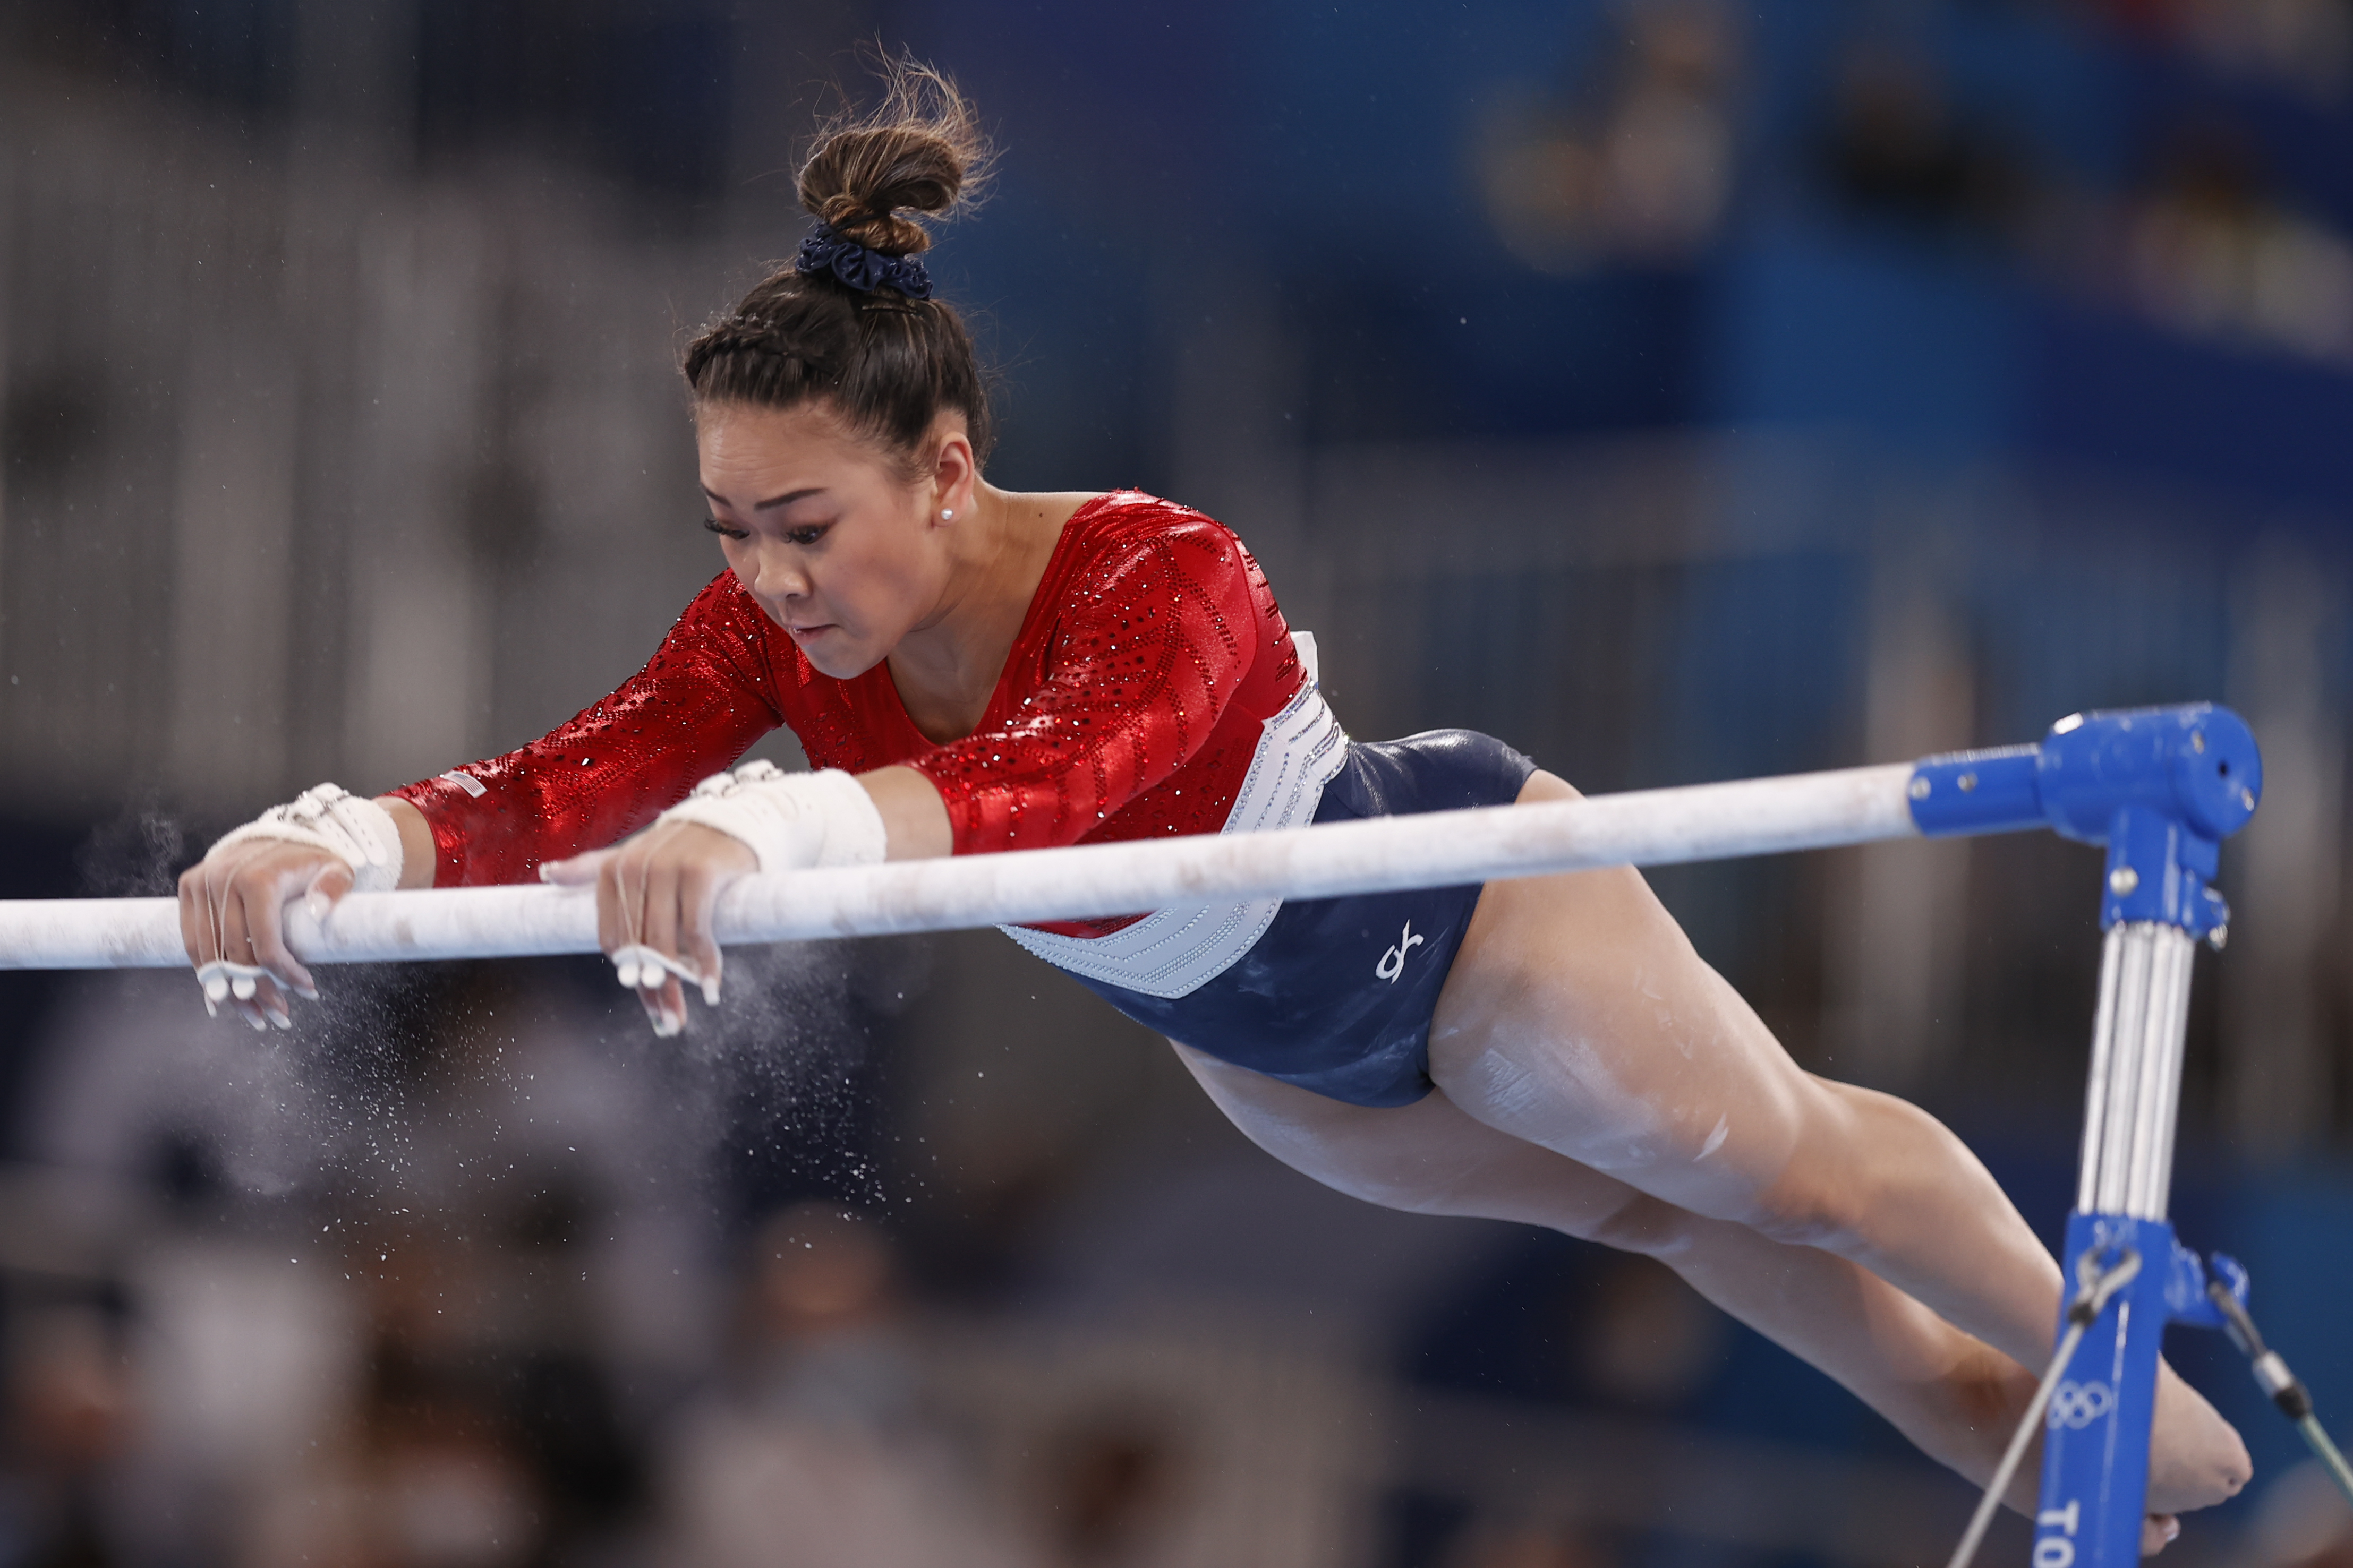 Sunisa Lee of Team United States competes in the uneven bars during the Women's Team Final on day four of the Tokyo 2020 Olympic Games at Ariake Gymnastics Centre on July 27, 2021 in Tokyo, Japan.